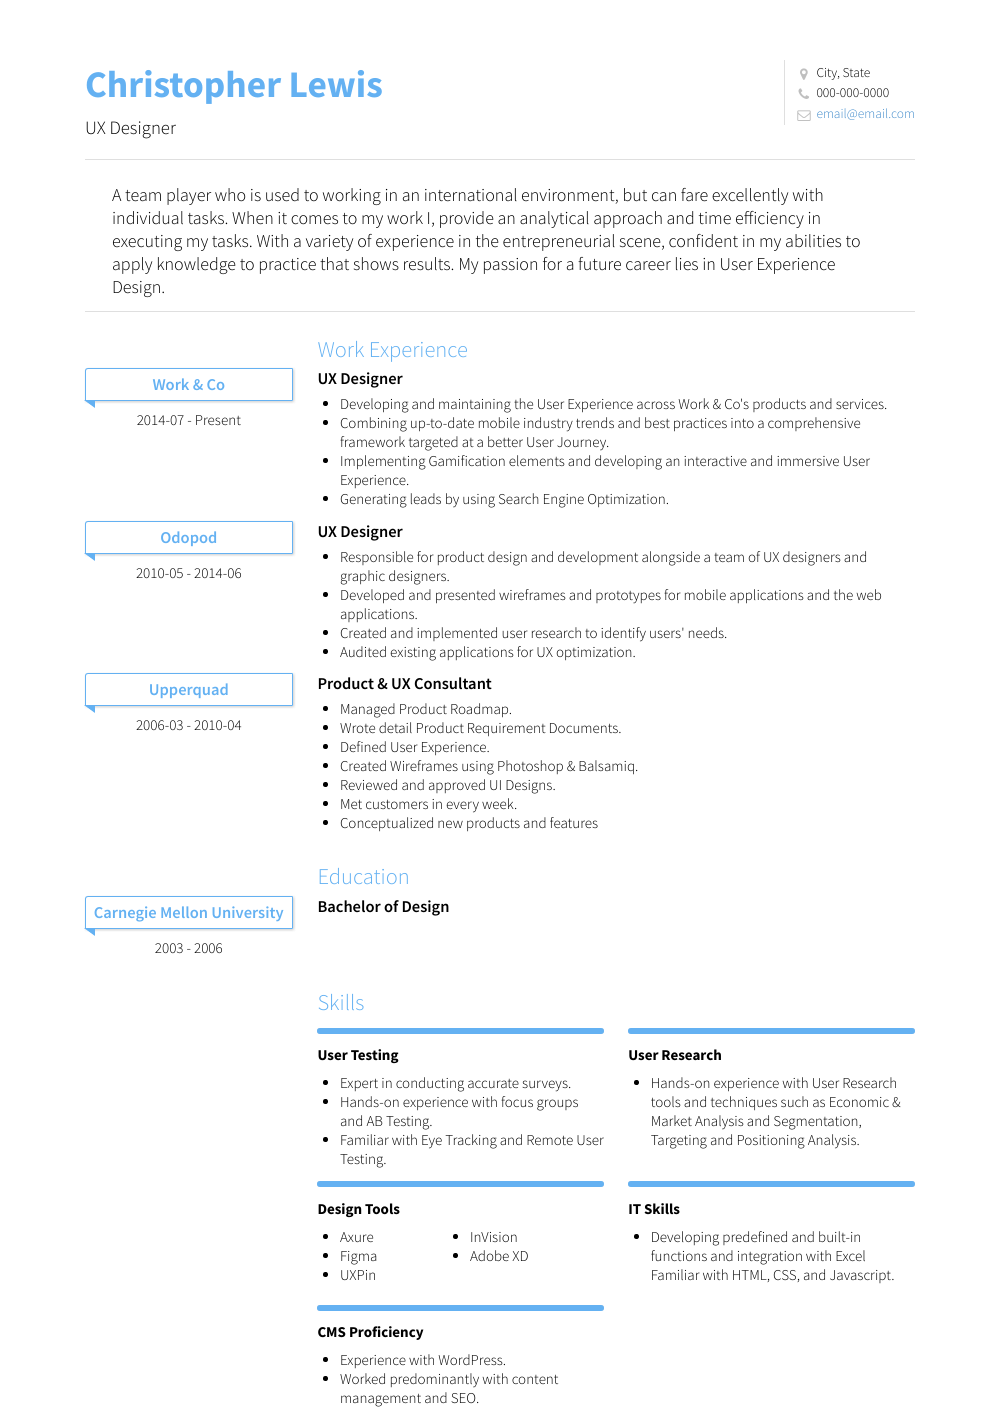 Ux Designer Resume Sample and Template